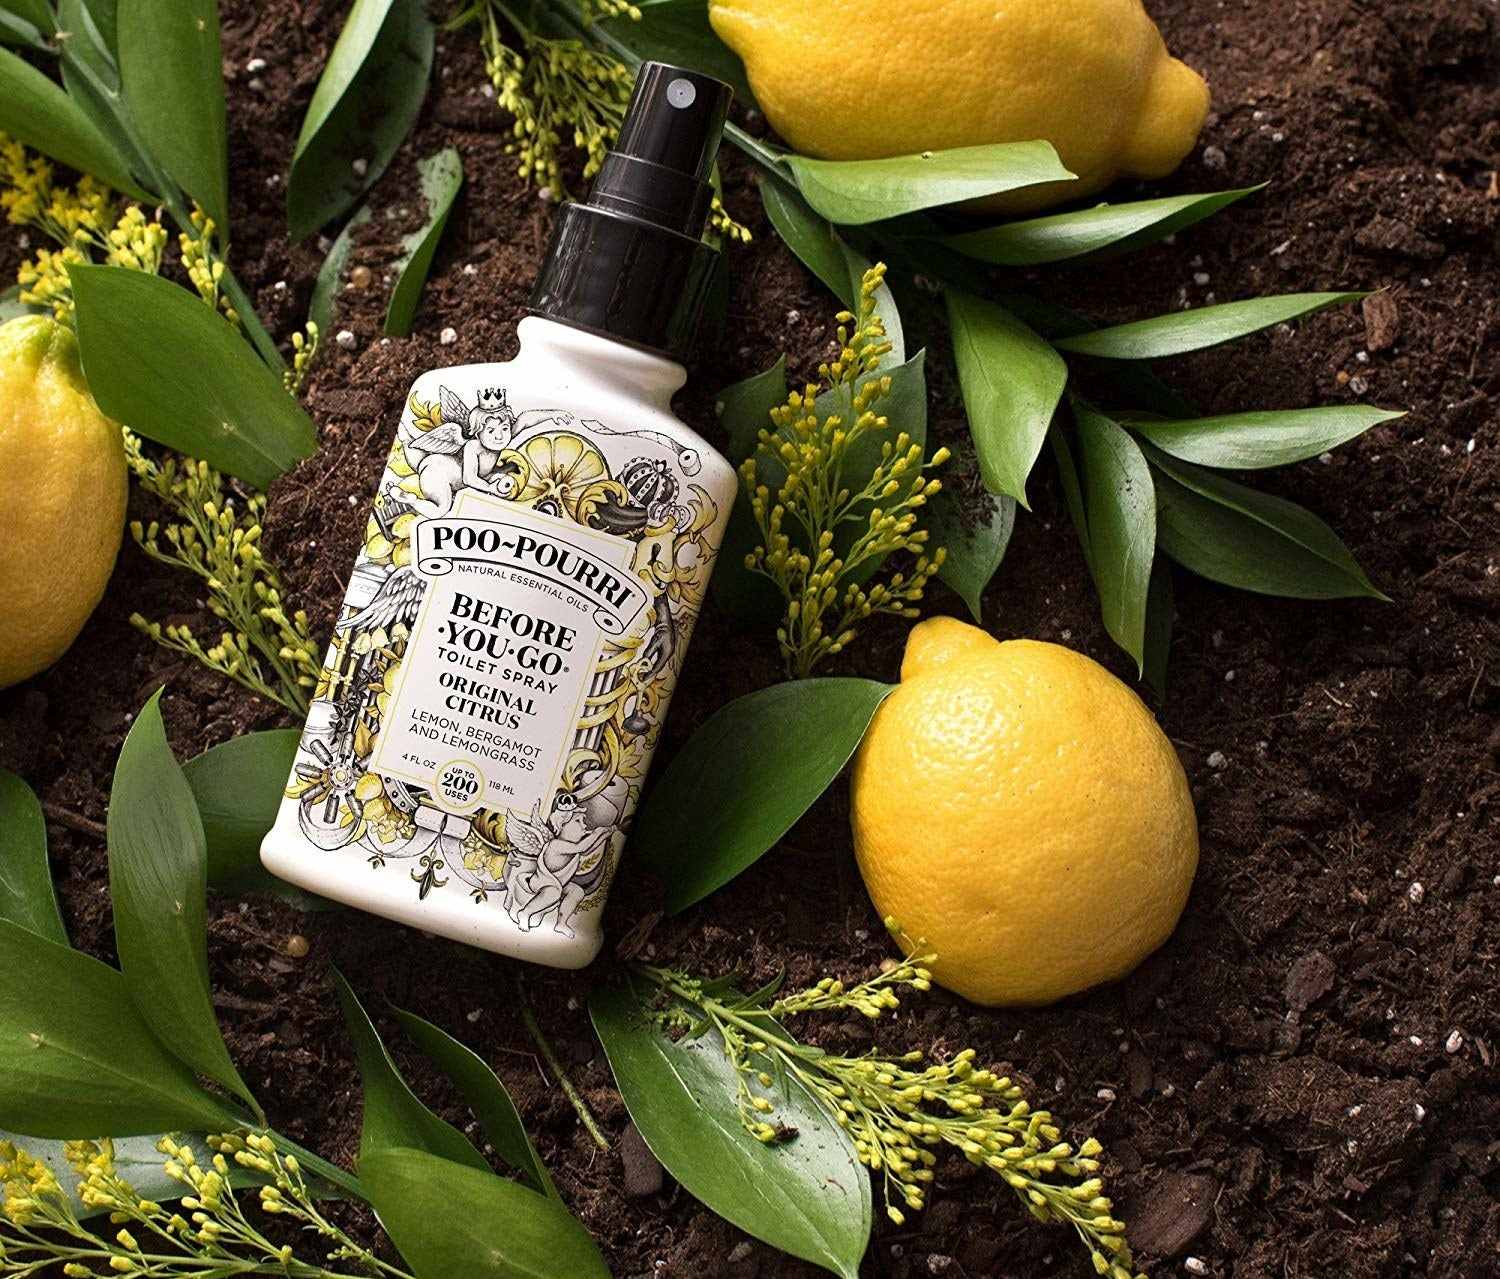 A bottle of lemon-scented toilet spray placed artfully on soil with lemons and leaves around it